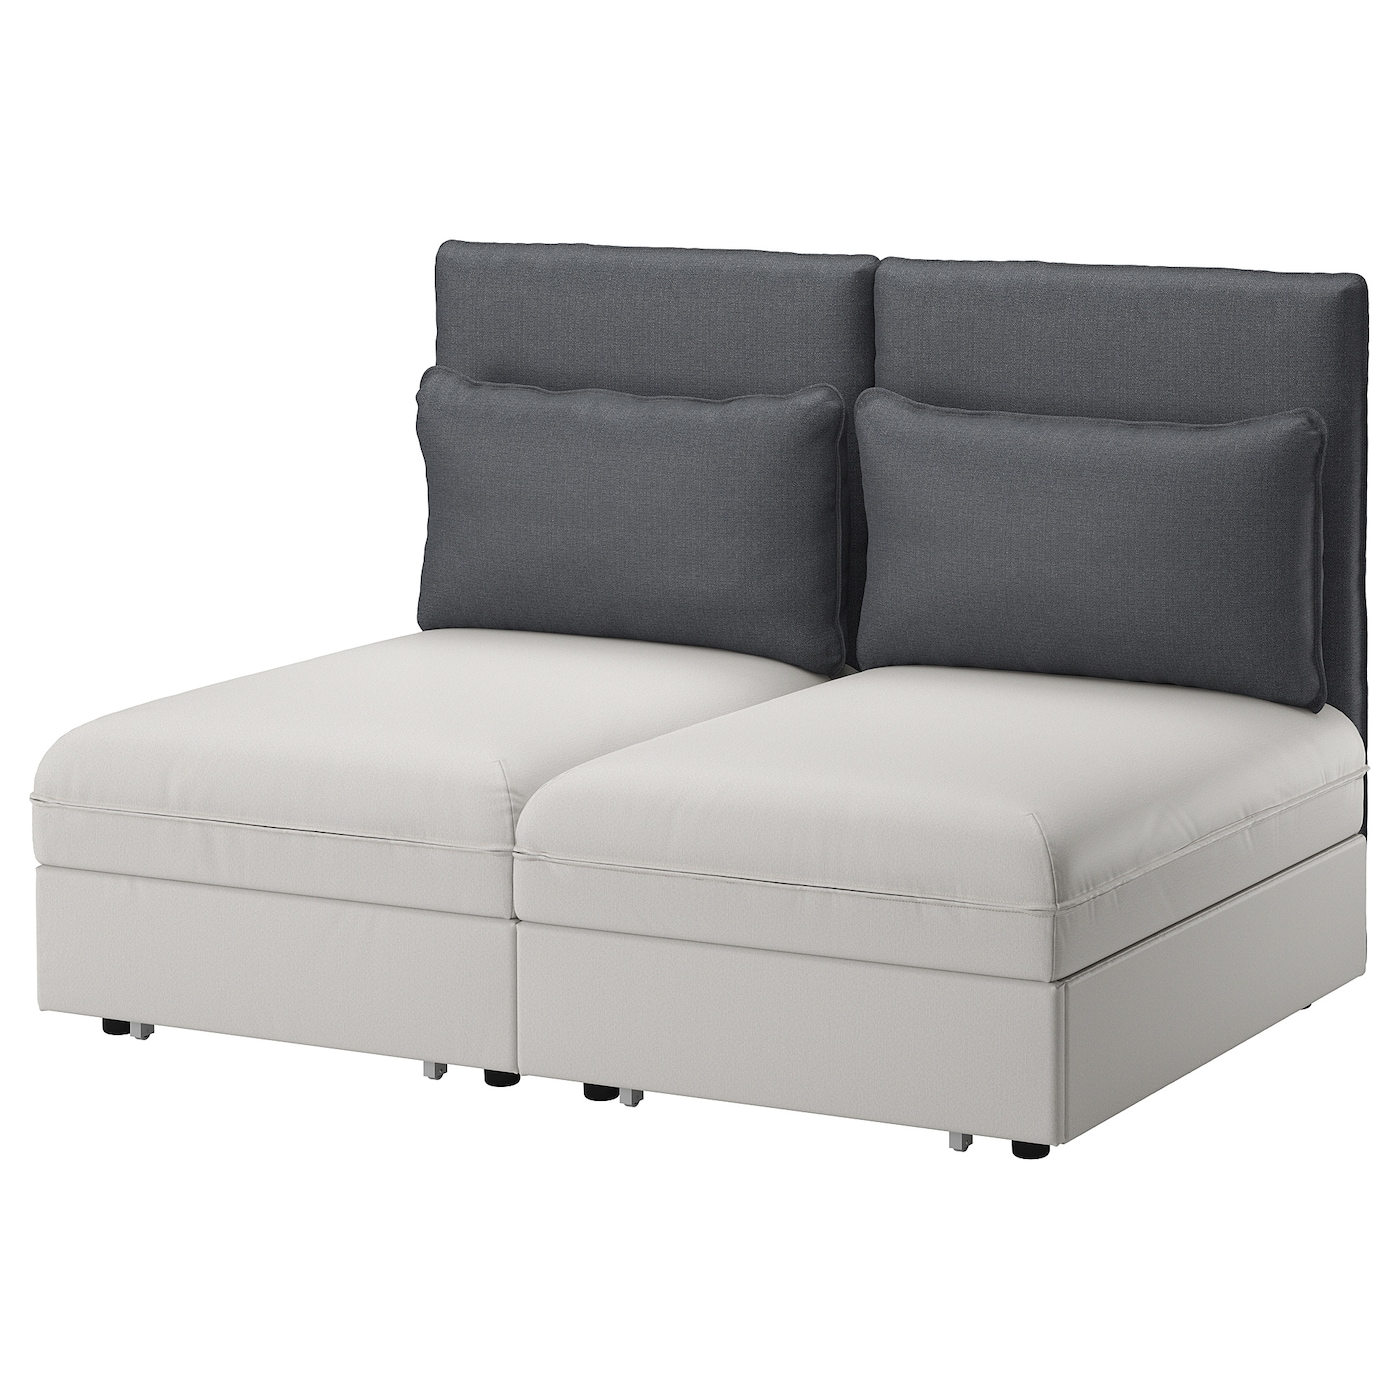 Vallentuna 2 seat sofa with bed ramna light grey hillared dark grey ikea Bed divan